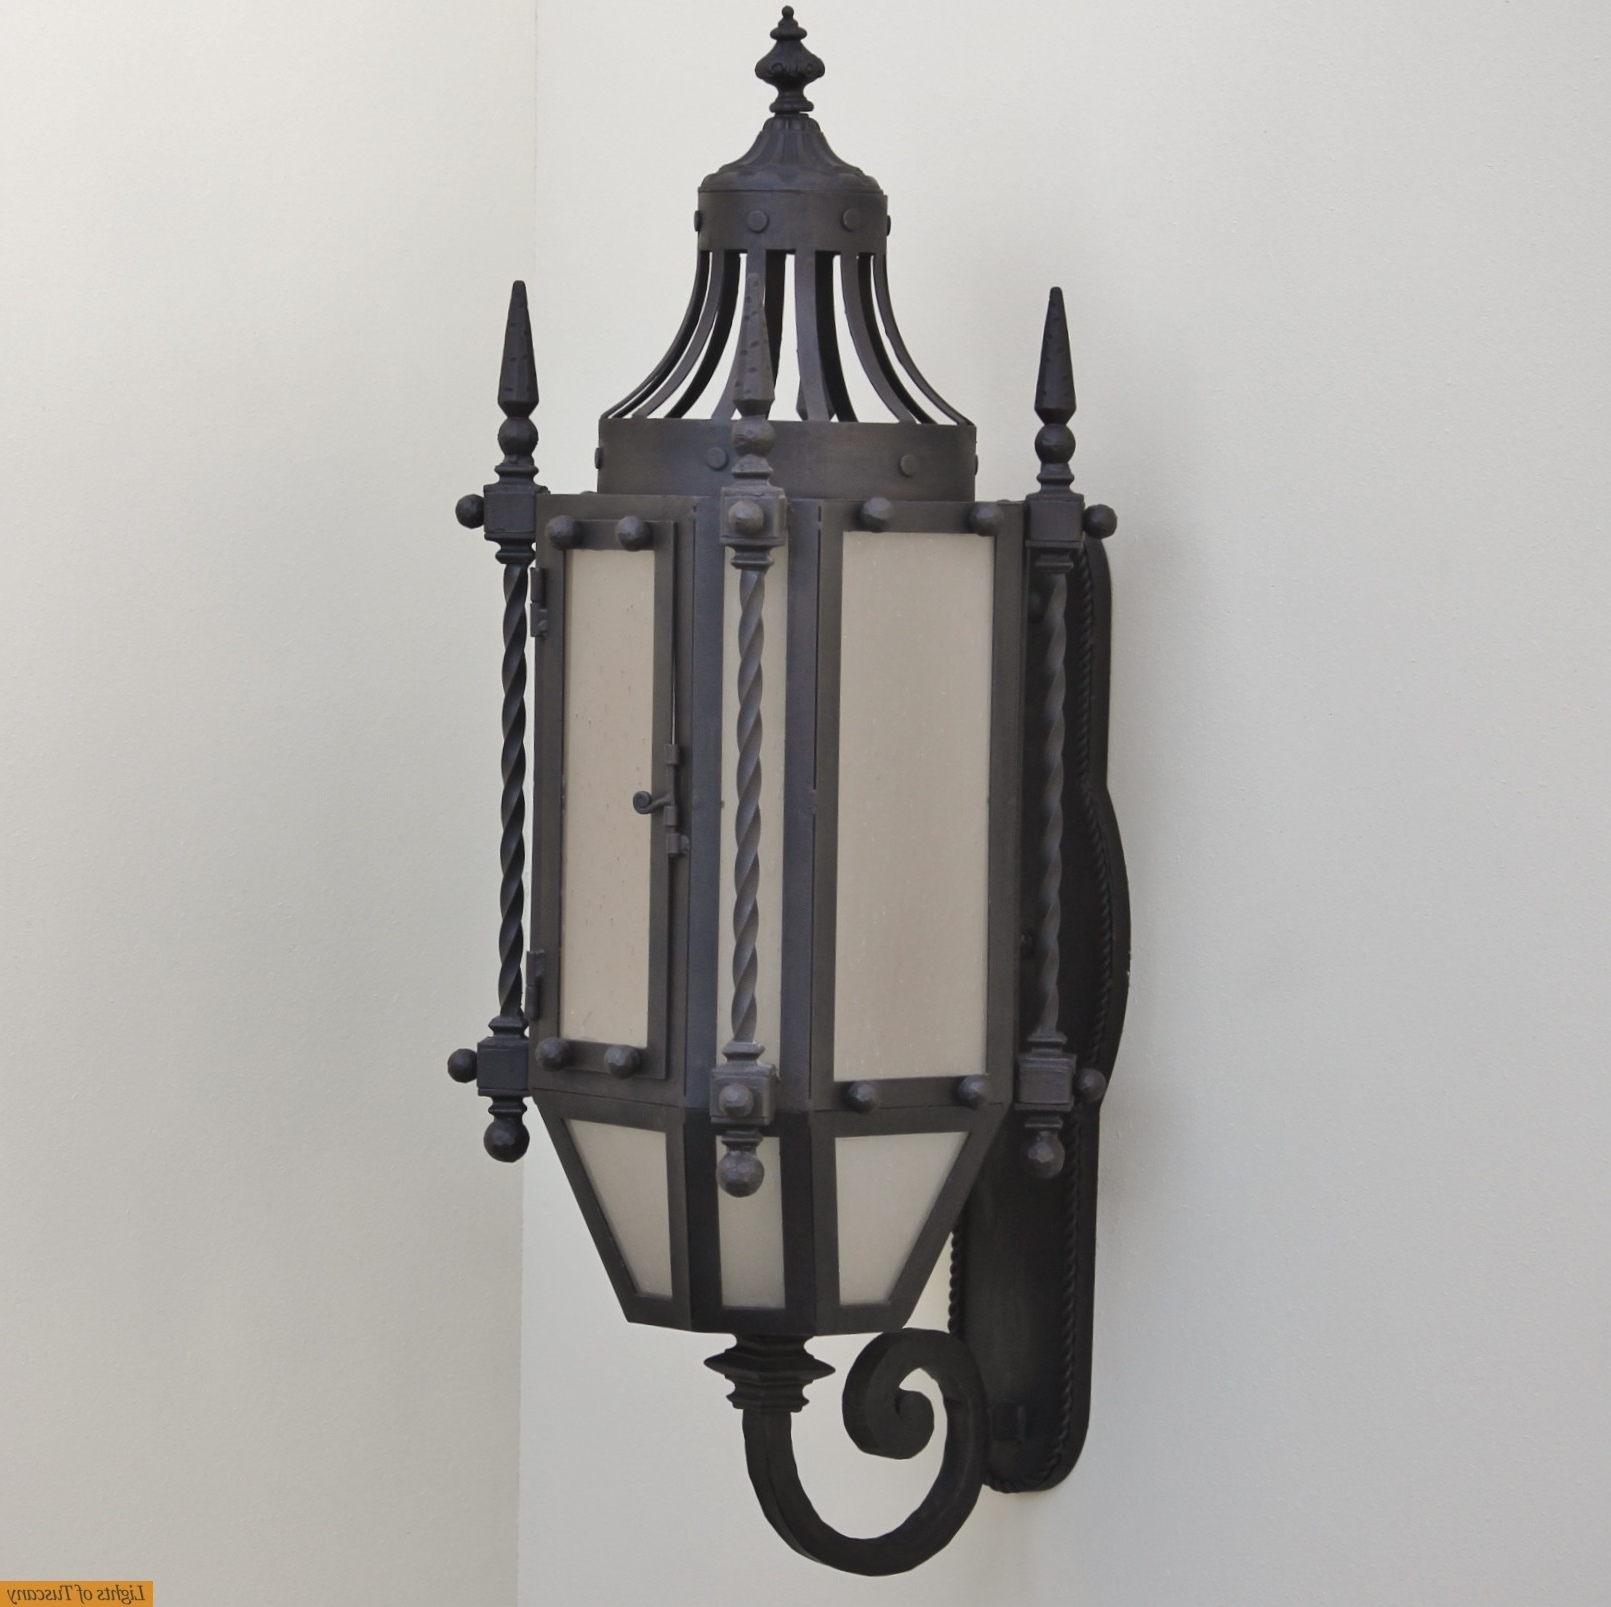 Gothic Outdoor Wall Lighting Regarding Best And Newest Lights Of Tuscany 7048 3 Wrought Iron Gothic/ Medieval Style Wall (View 7 of 20)